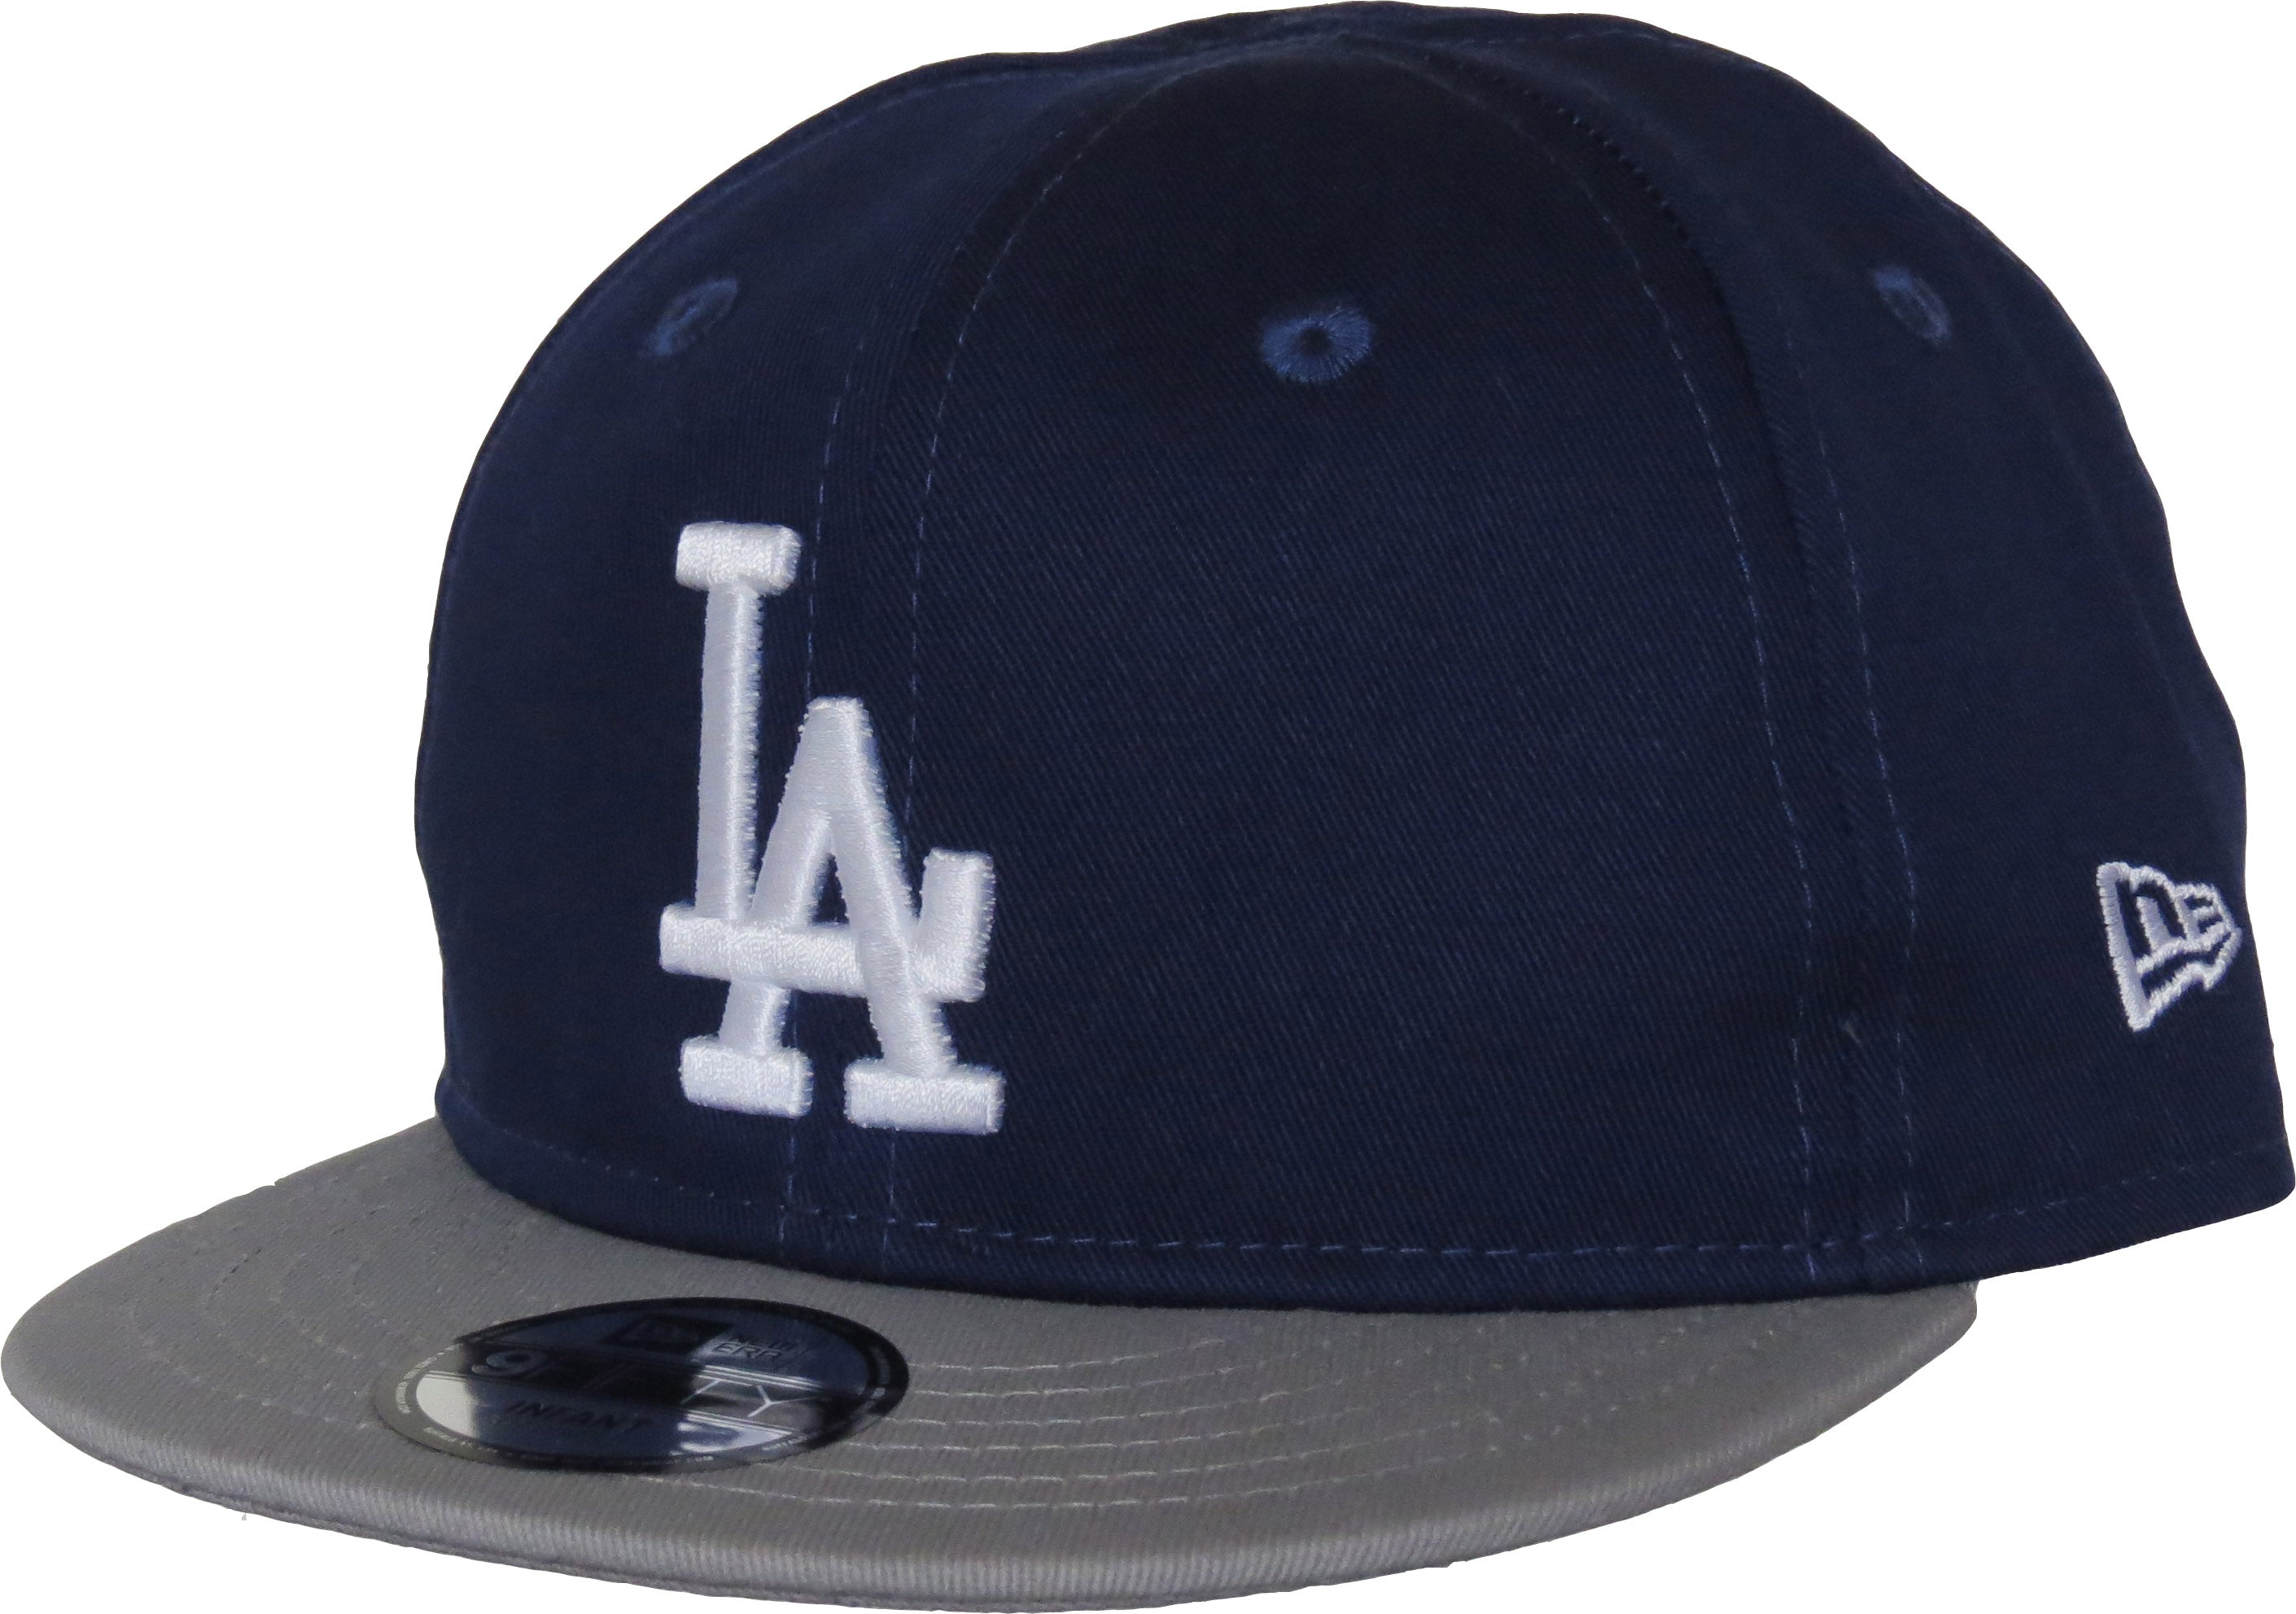 523d9456816d4e New Era 950 My 1st LA Dodgers Infant Snapback Cap ( 0 - 2 years old ) –  lovemycap